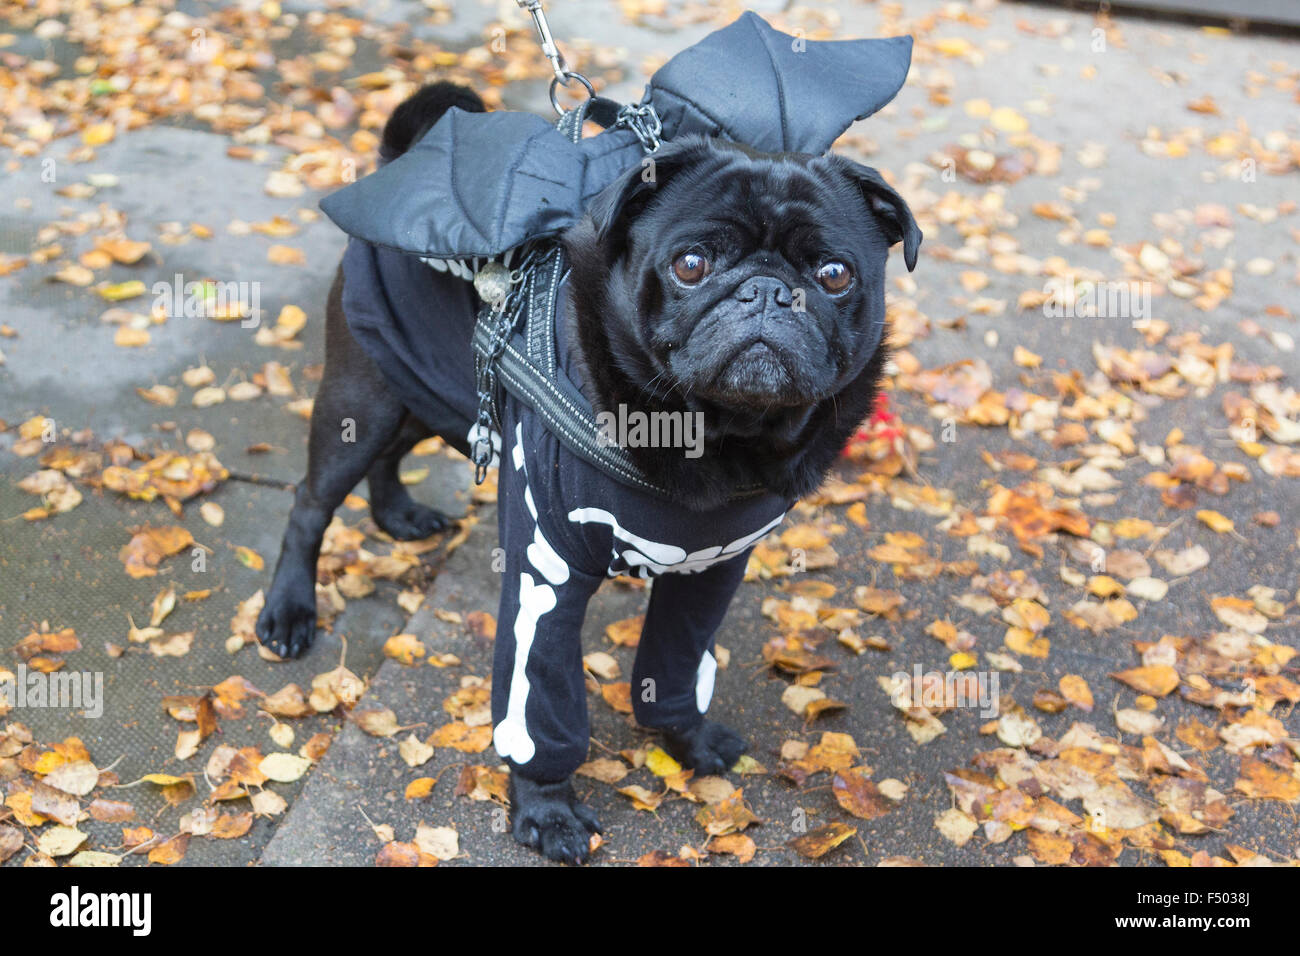 Pug Odin 7 Years With A Skeleton Costume And Bat Wings Halloween Dog Walk Organised By Animal Charity All Dogs Matter At Spaniards Inn